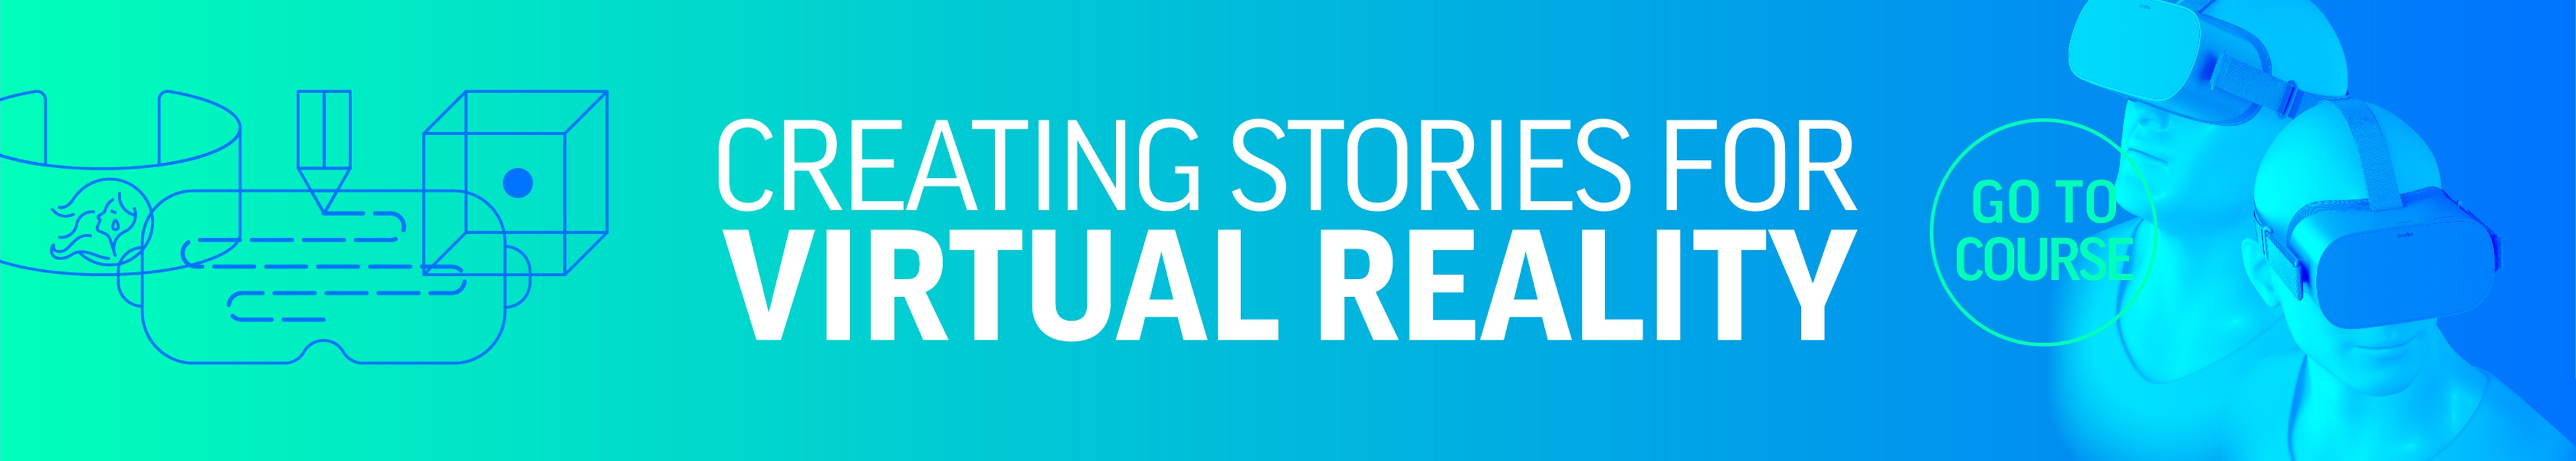 Creating stories for virtual reality - Course